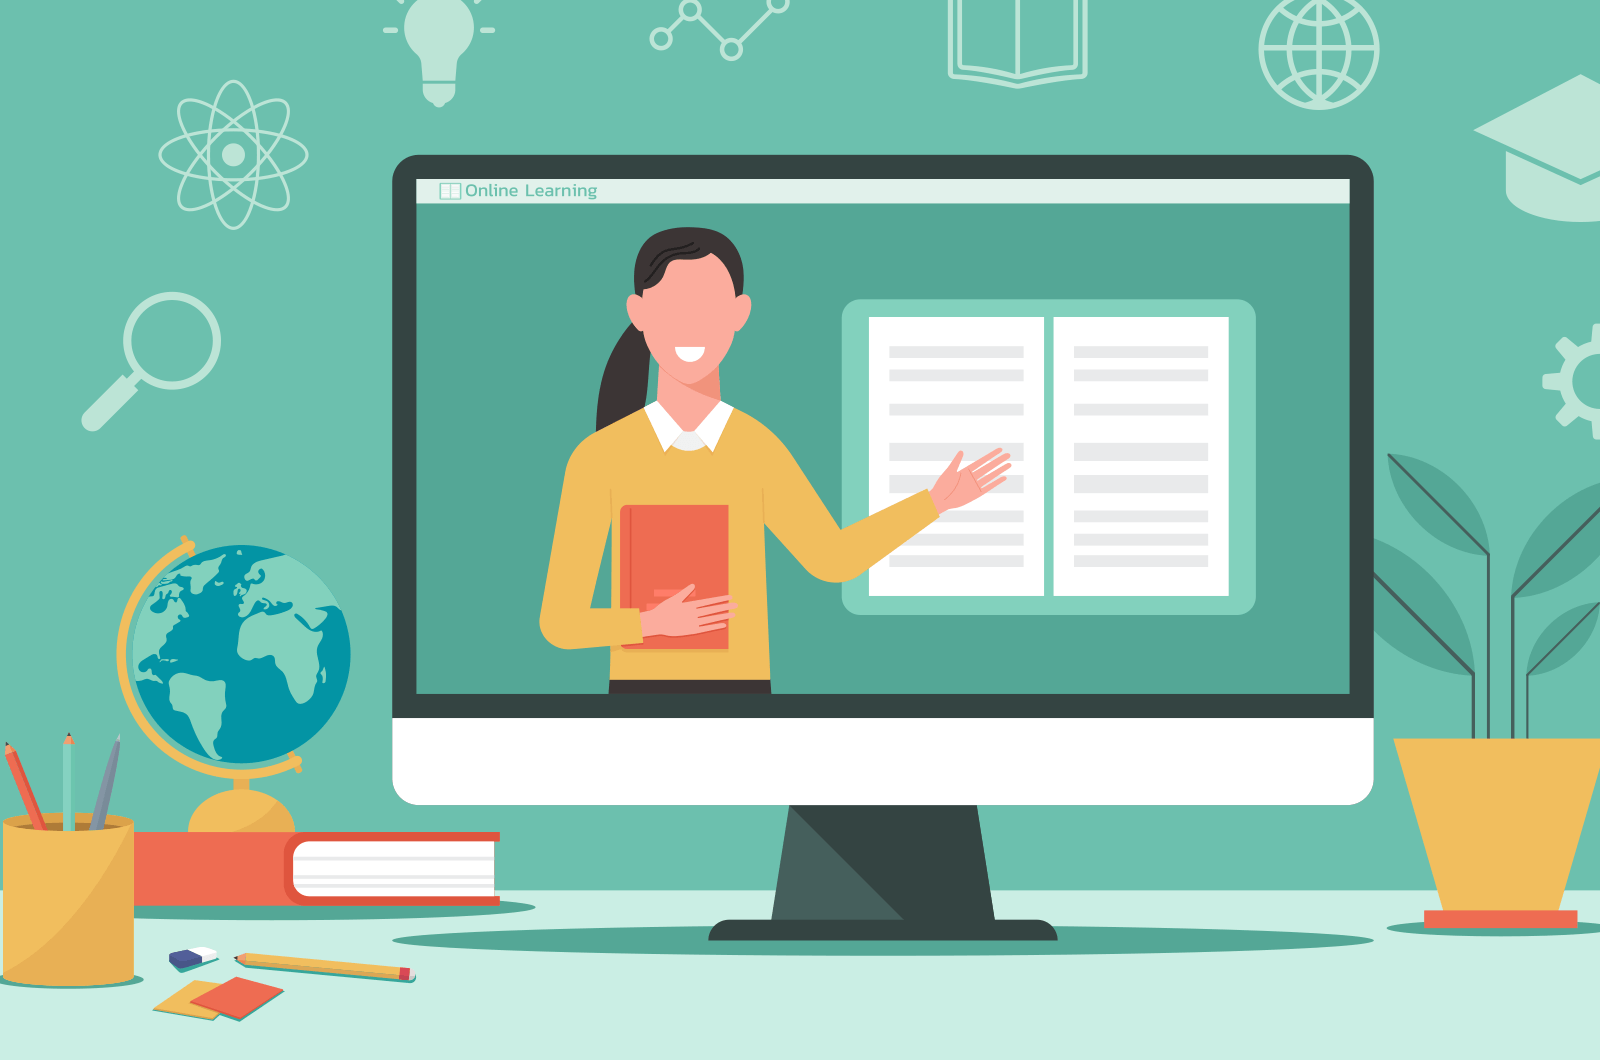 Cartoon female teacher coming out of laptop with books, globe, coffee, and plant surrounding